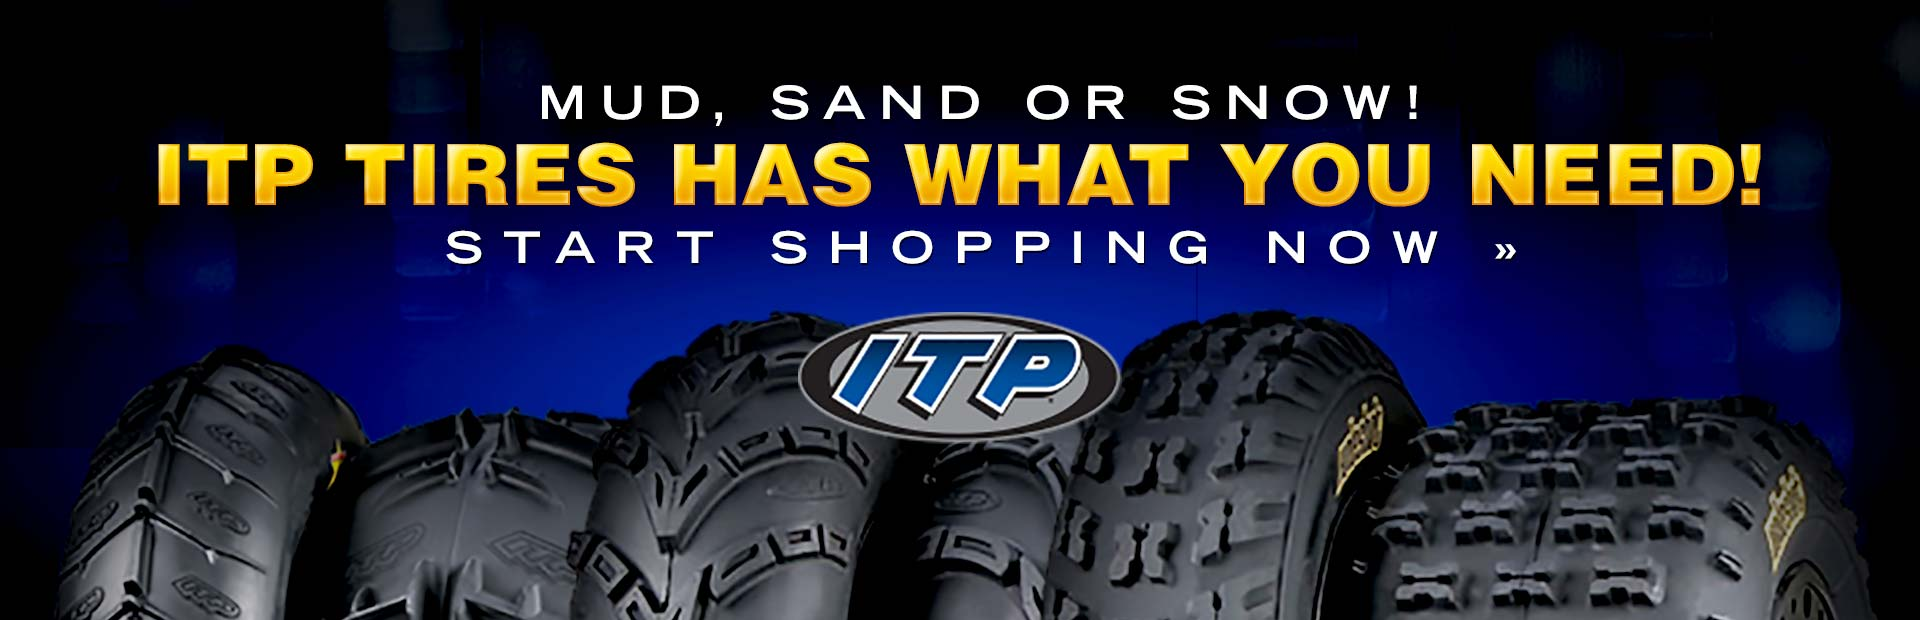 Click here to view ITP tires.